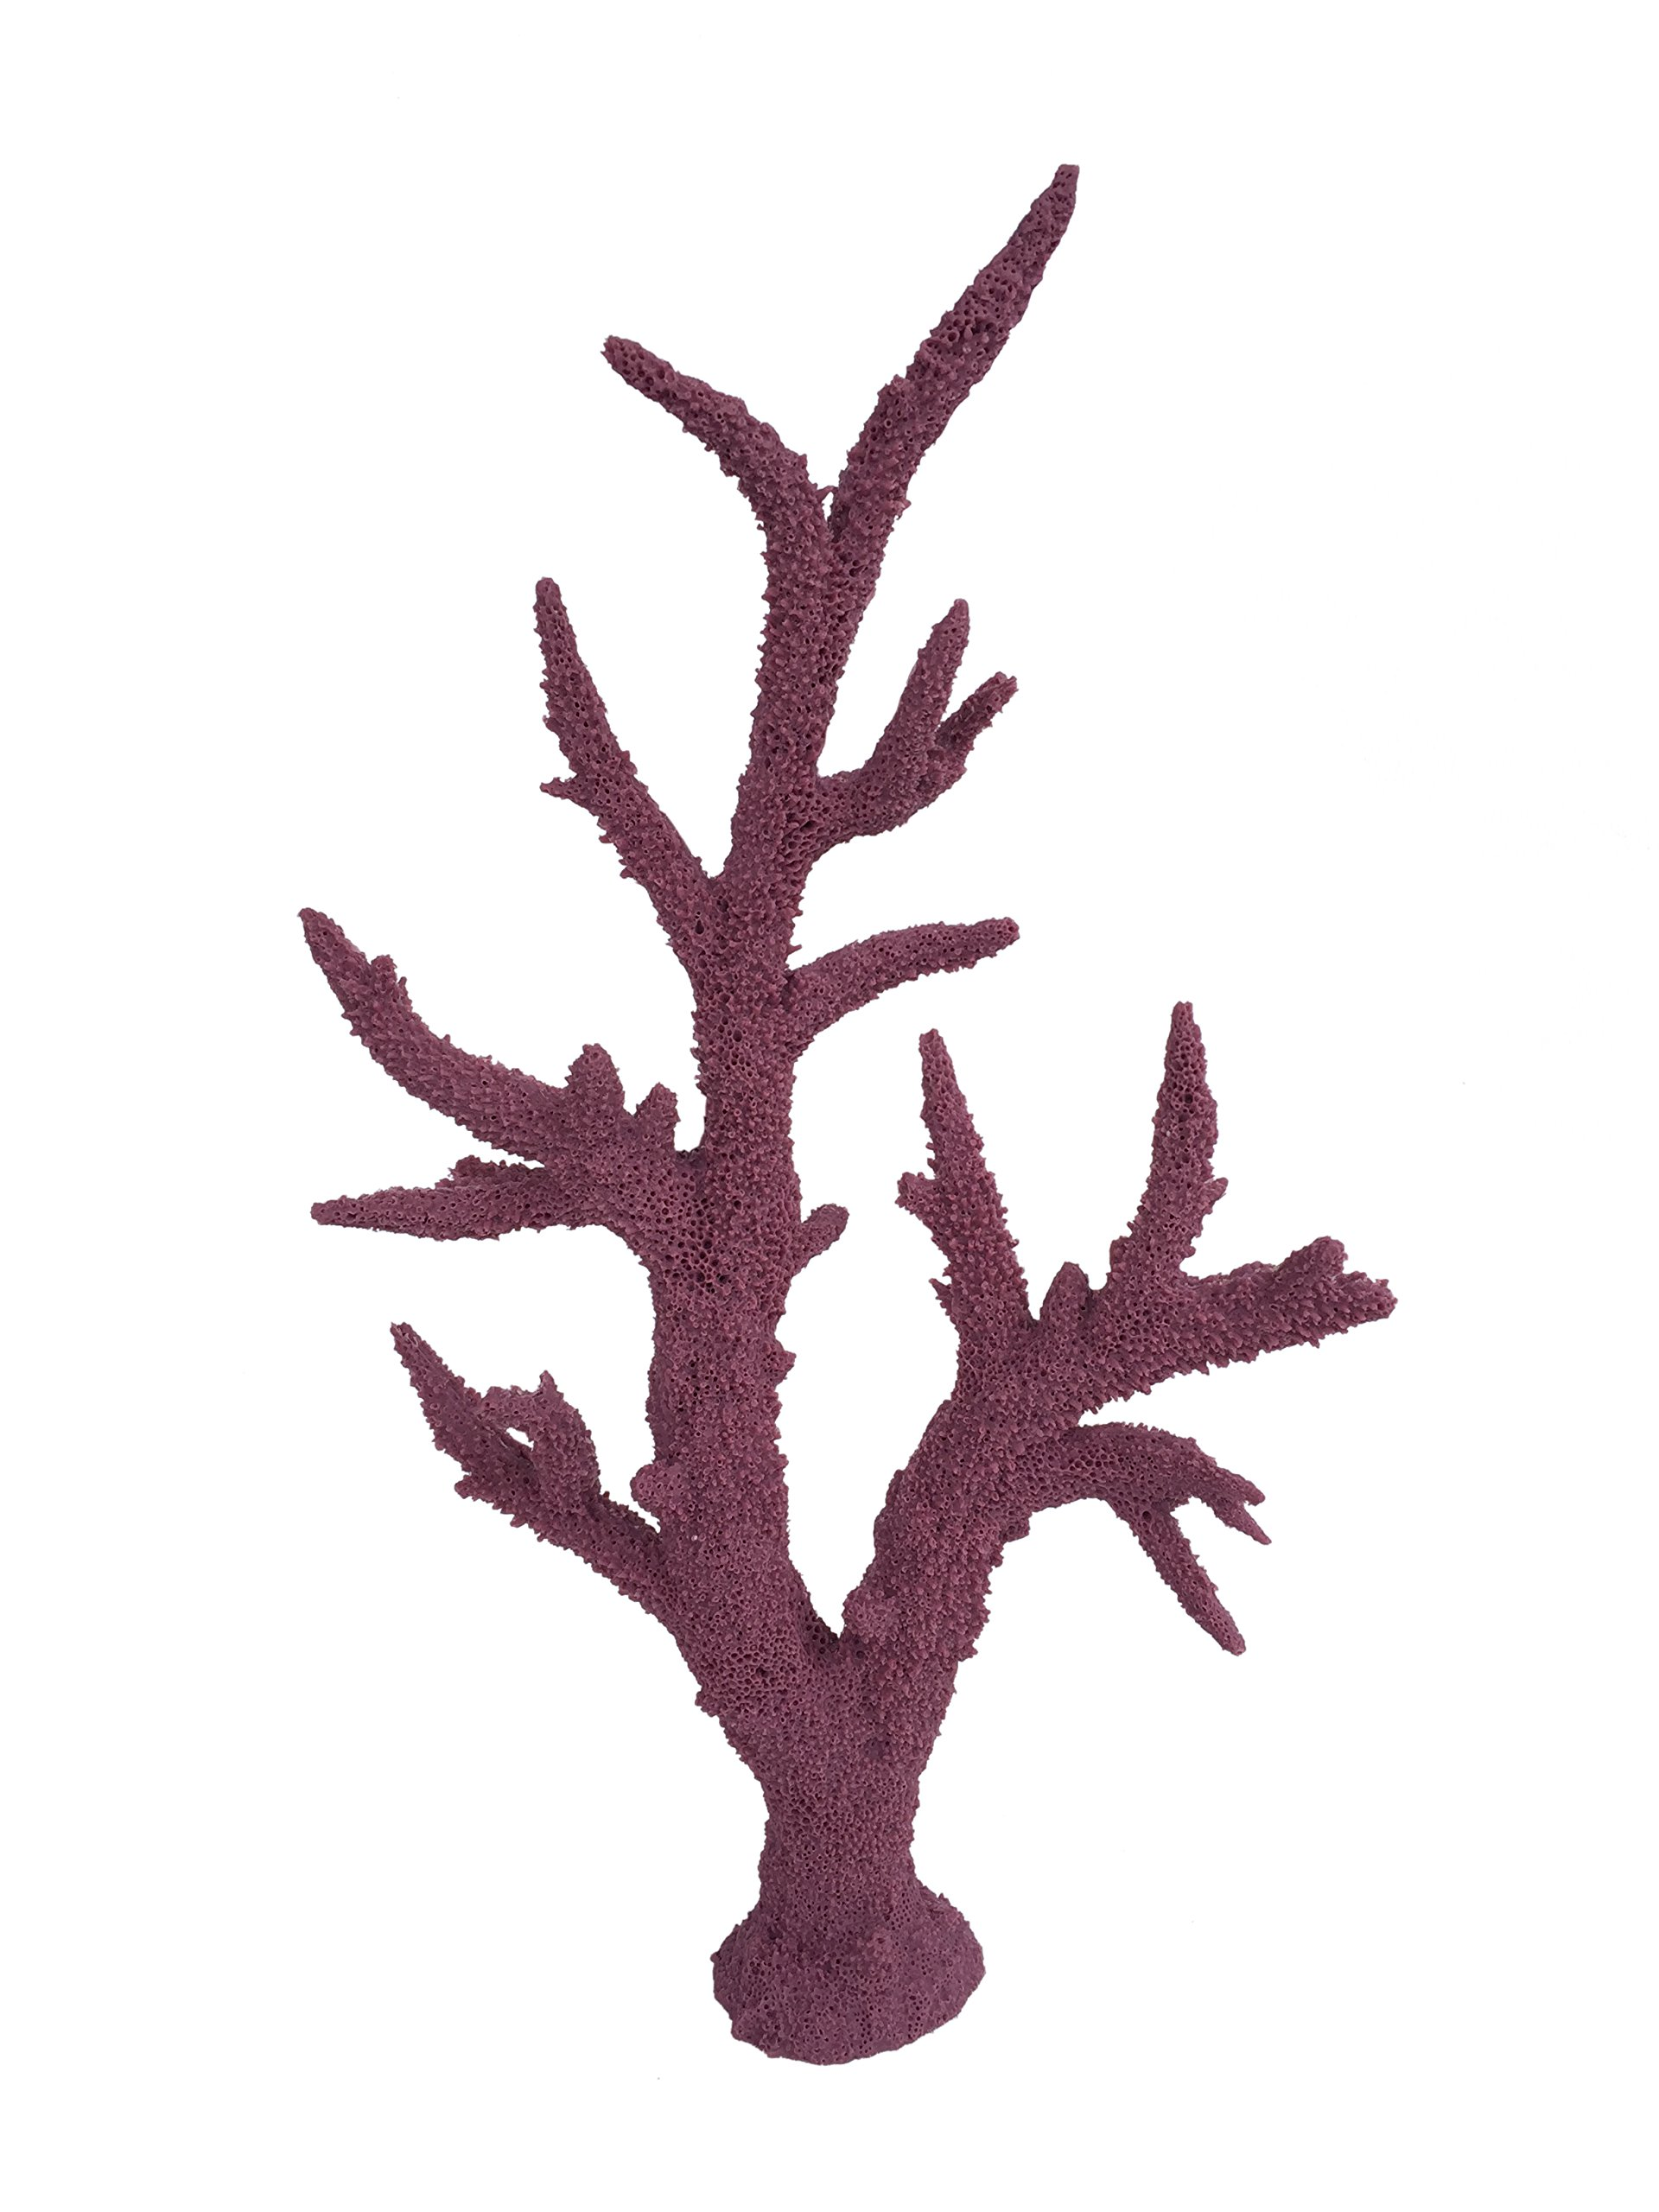 WECO South Pacific Coral Replica Staghorn Tall Purple - Med by WECO South Pacific